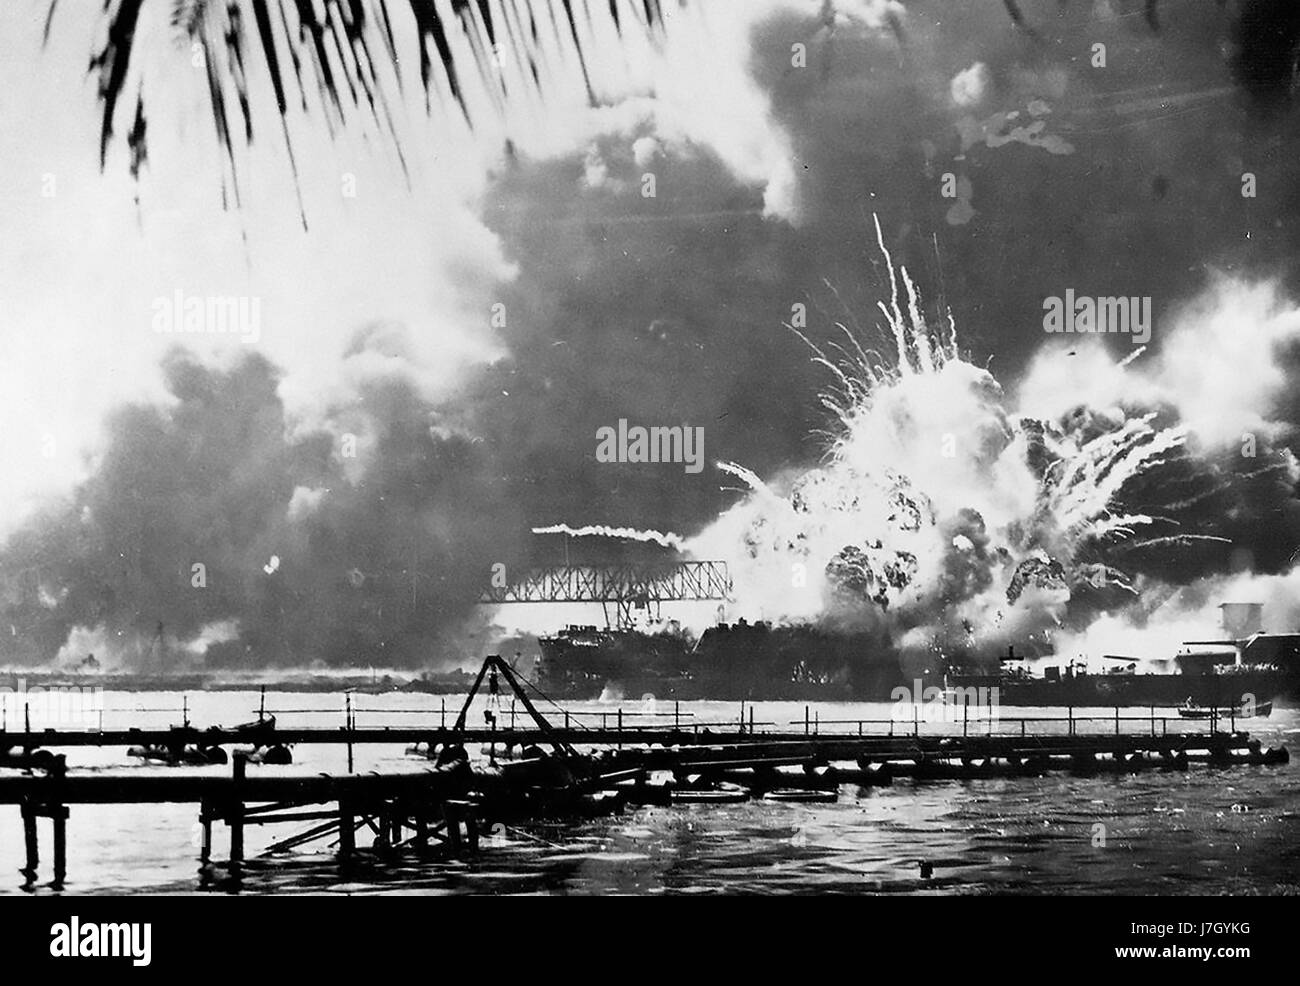 USS SHAW destroyer exploding when her forward ammunition magazine was set on fire during the Pearl Harbour attack - Stock Image